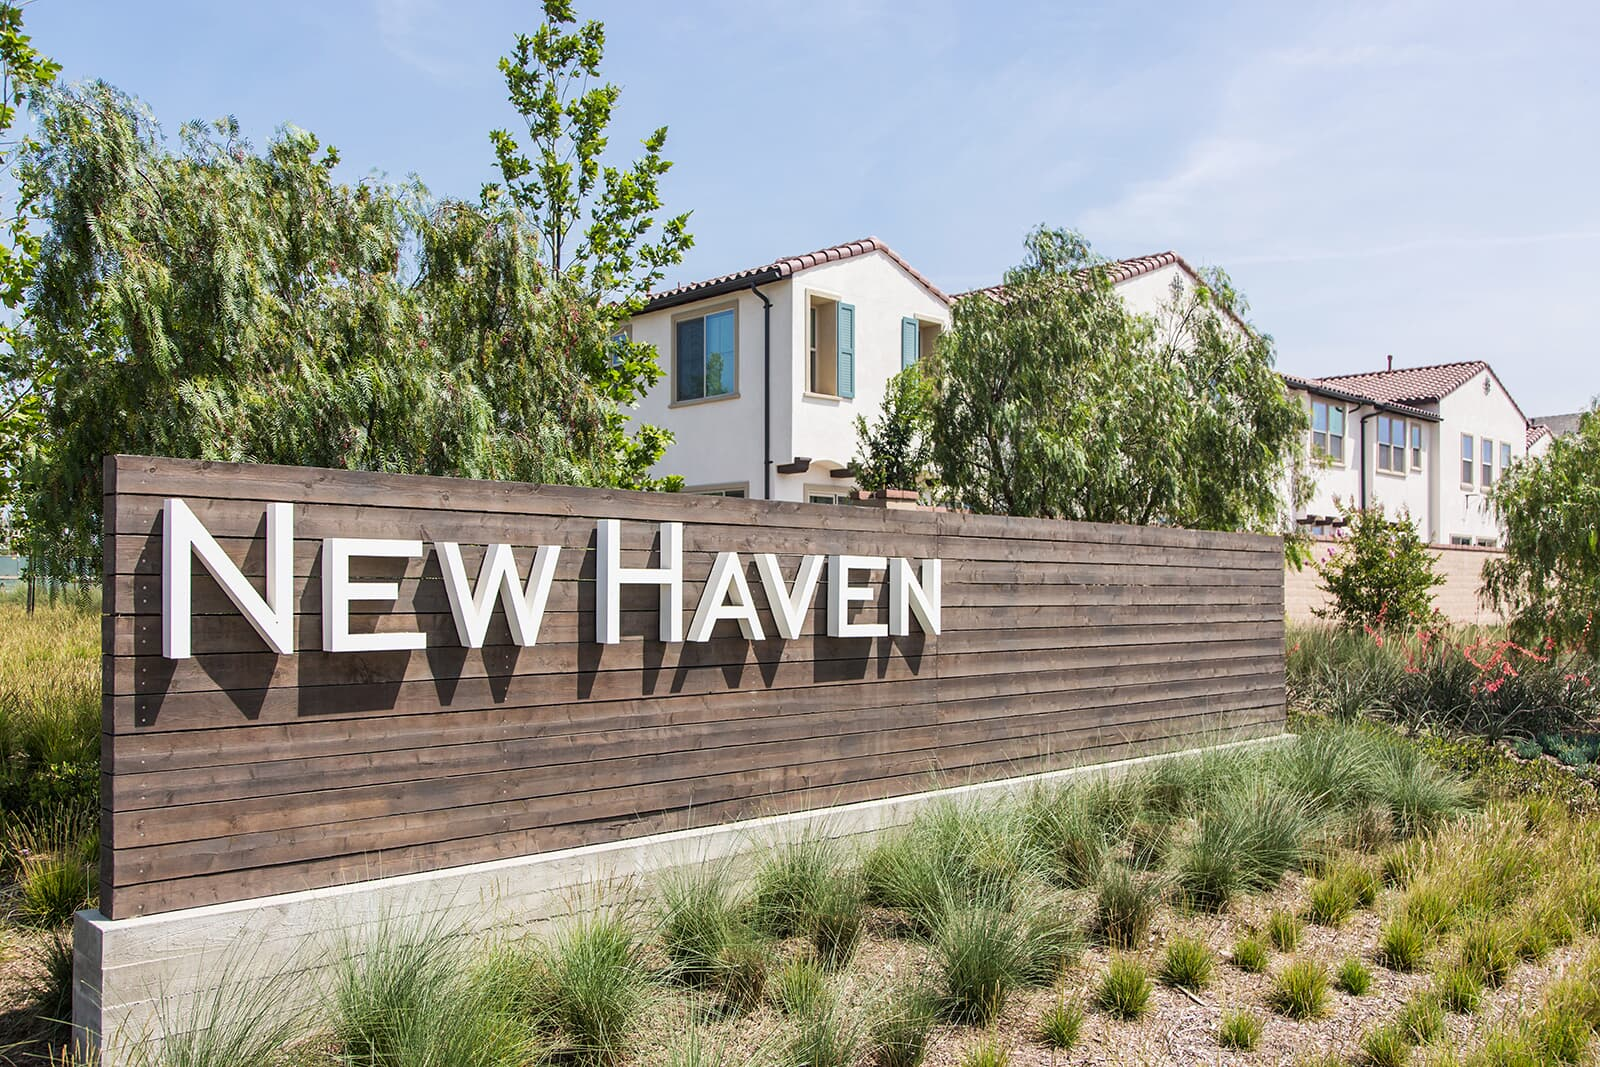 New Haven sign at New Haven in Ontario Ranch, CA | Brookfield Residential